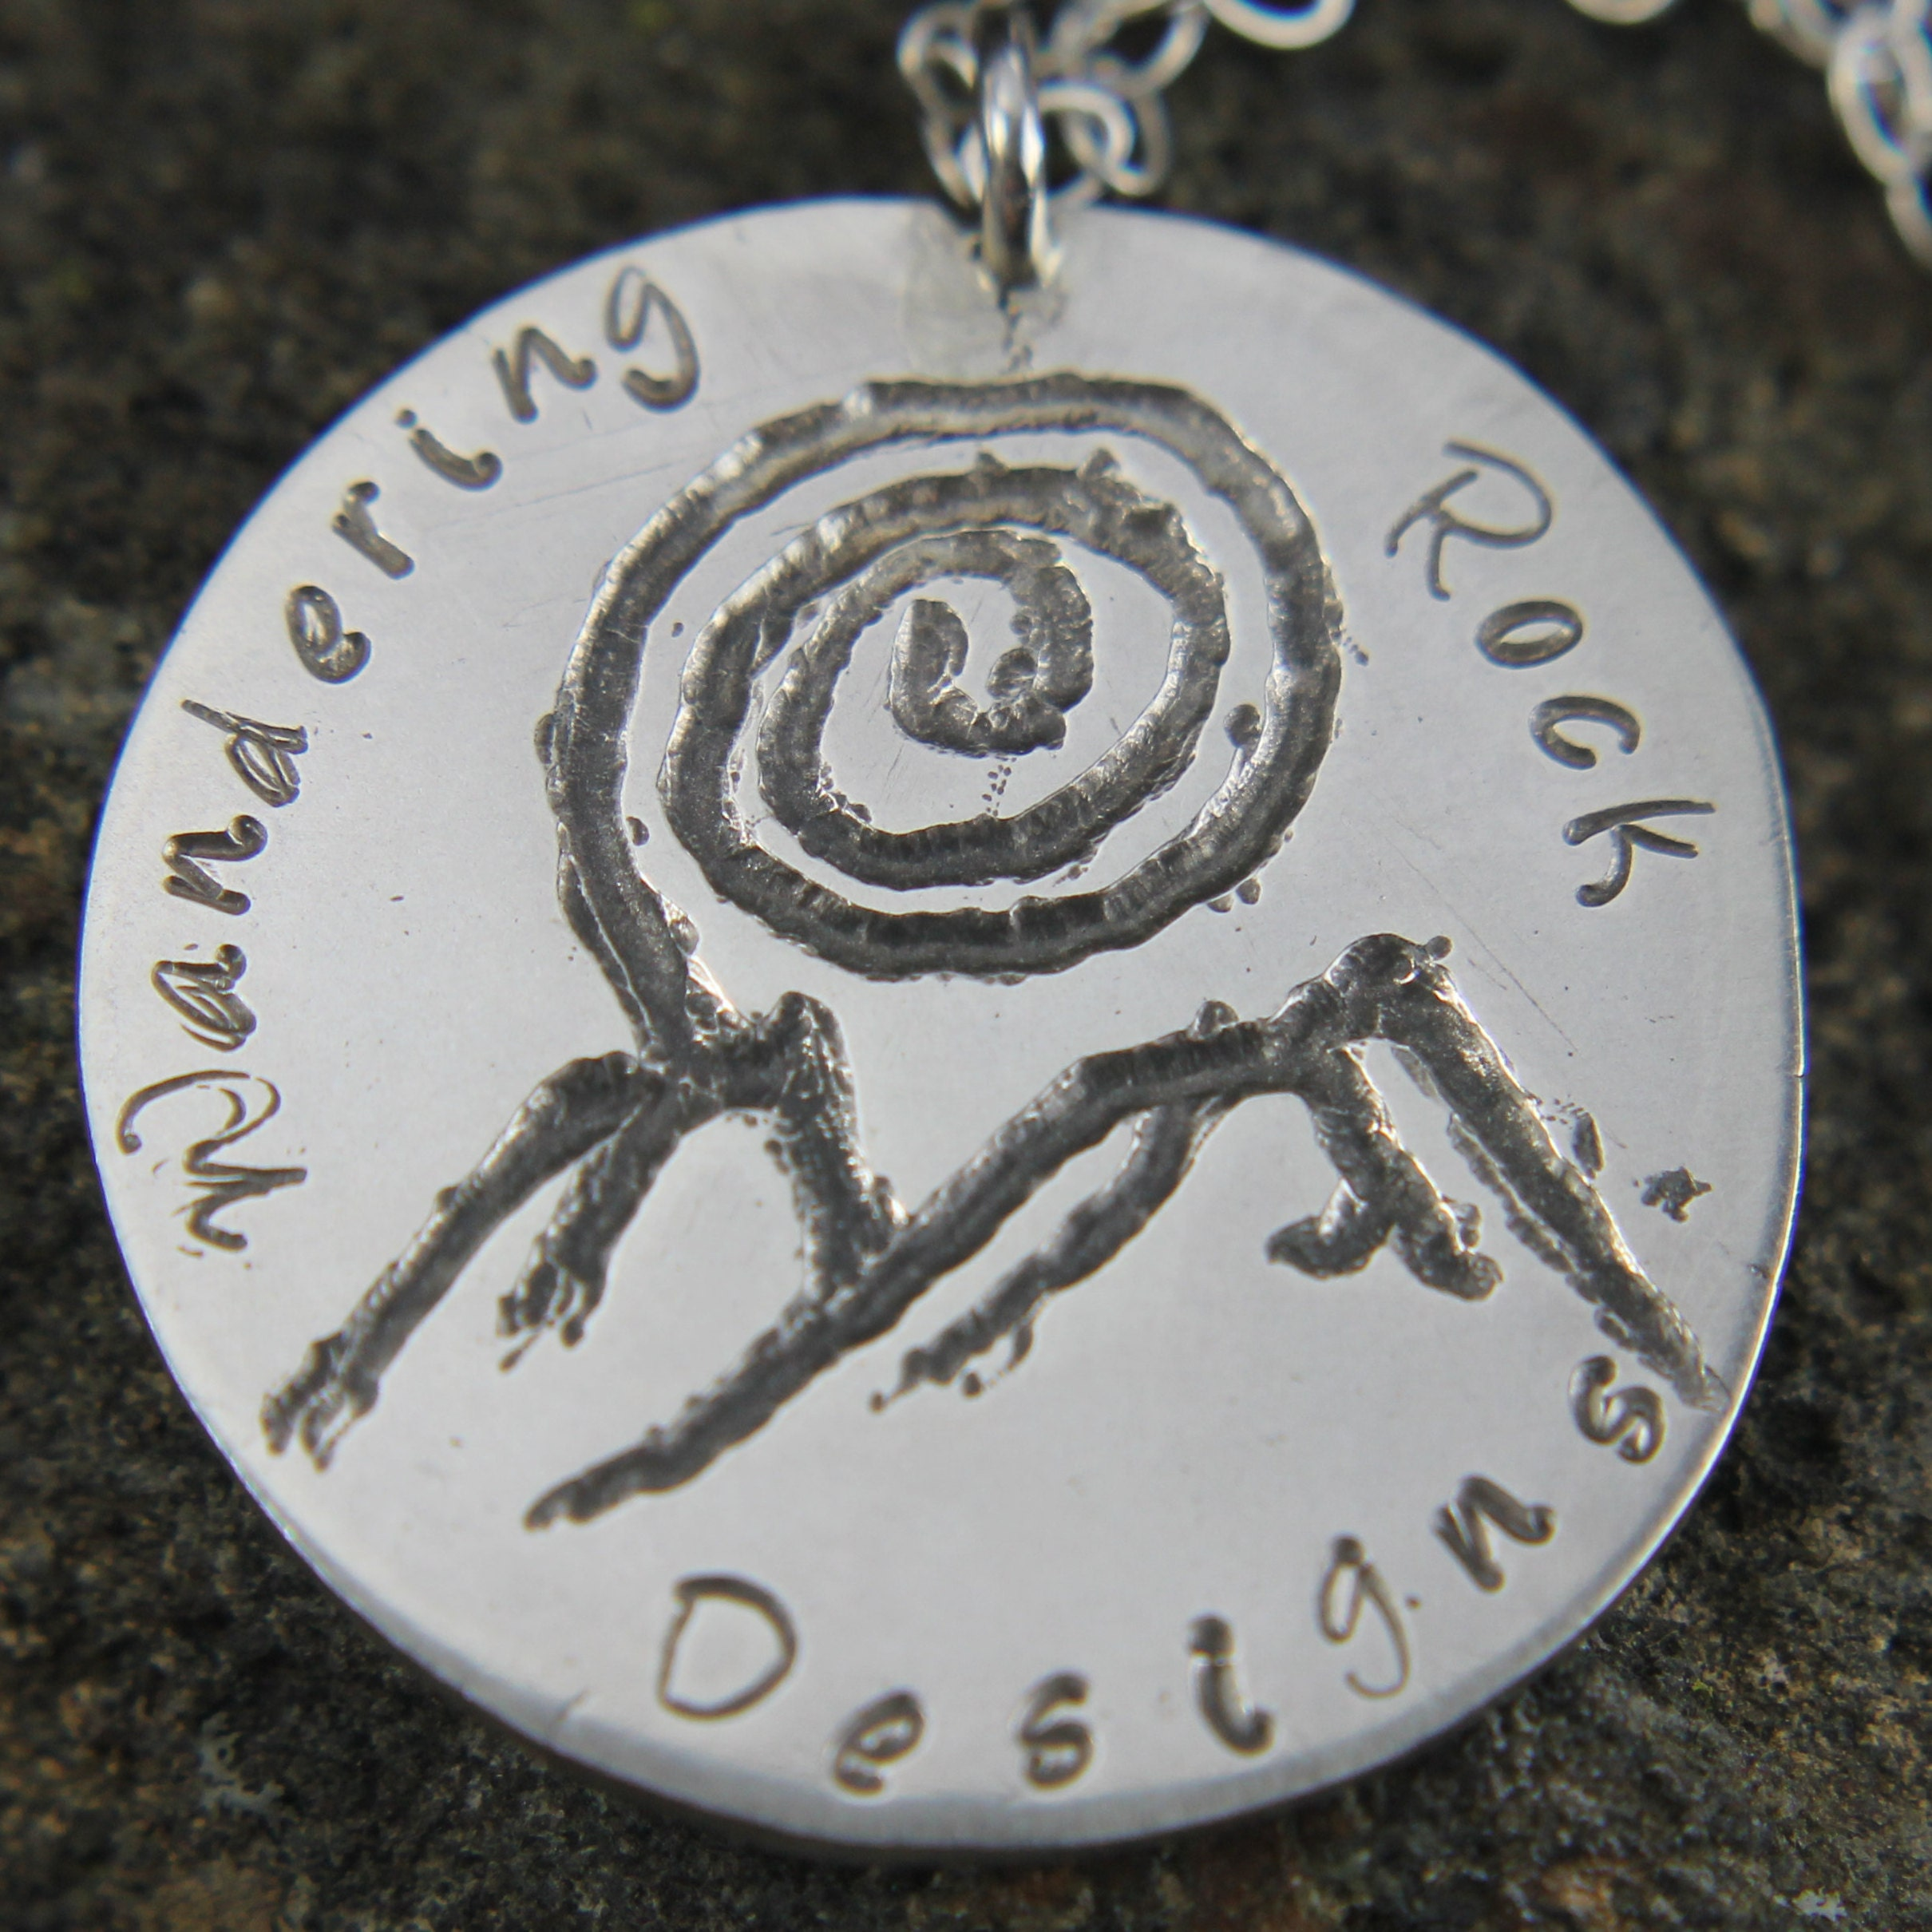 WanderingRockDesigns - Capturing life's moments in metal and stone.